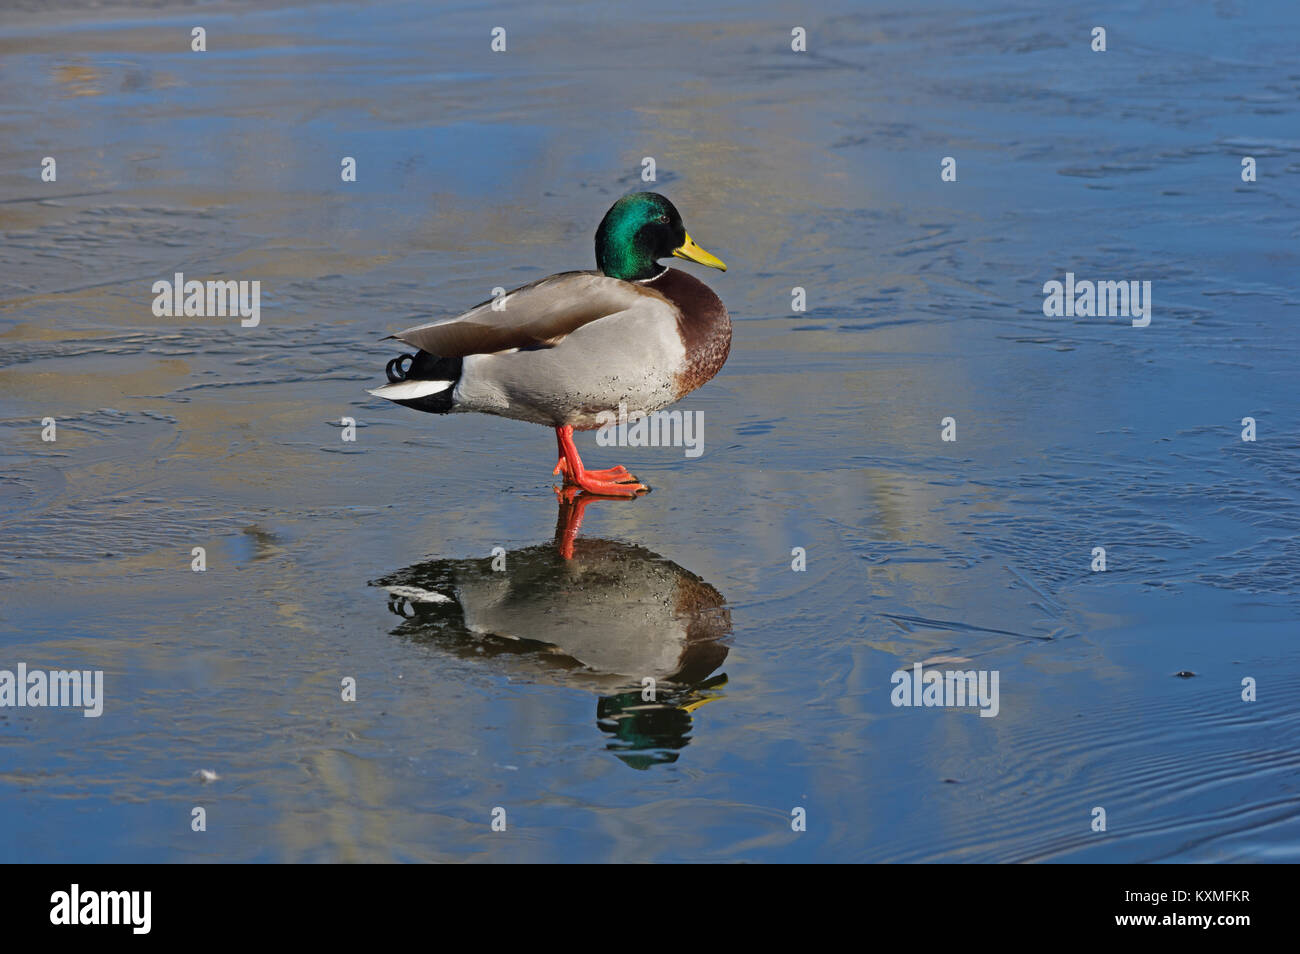 male mallard duck standing on thin ice with reflection - Stock Image